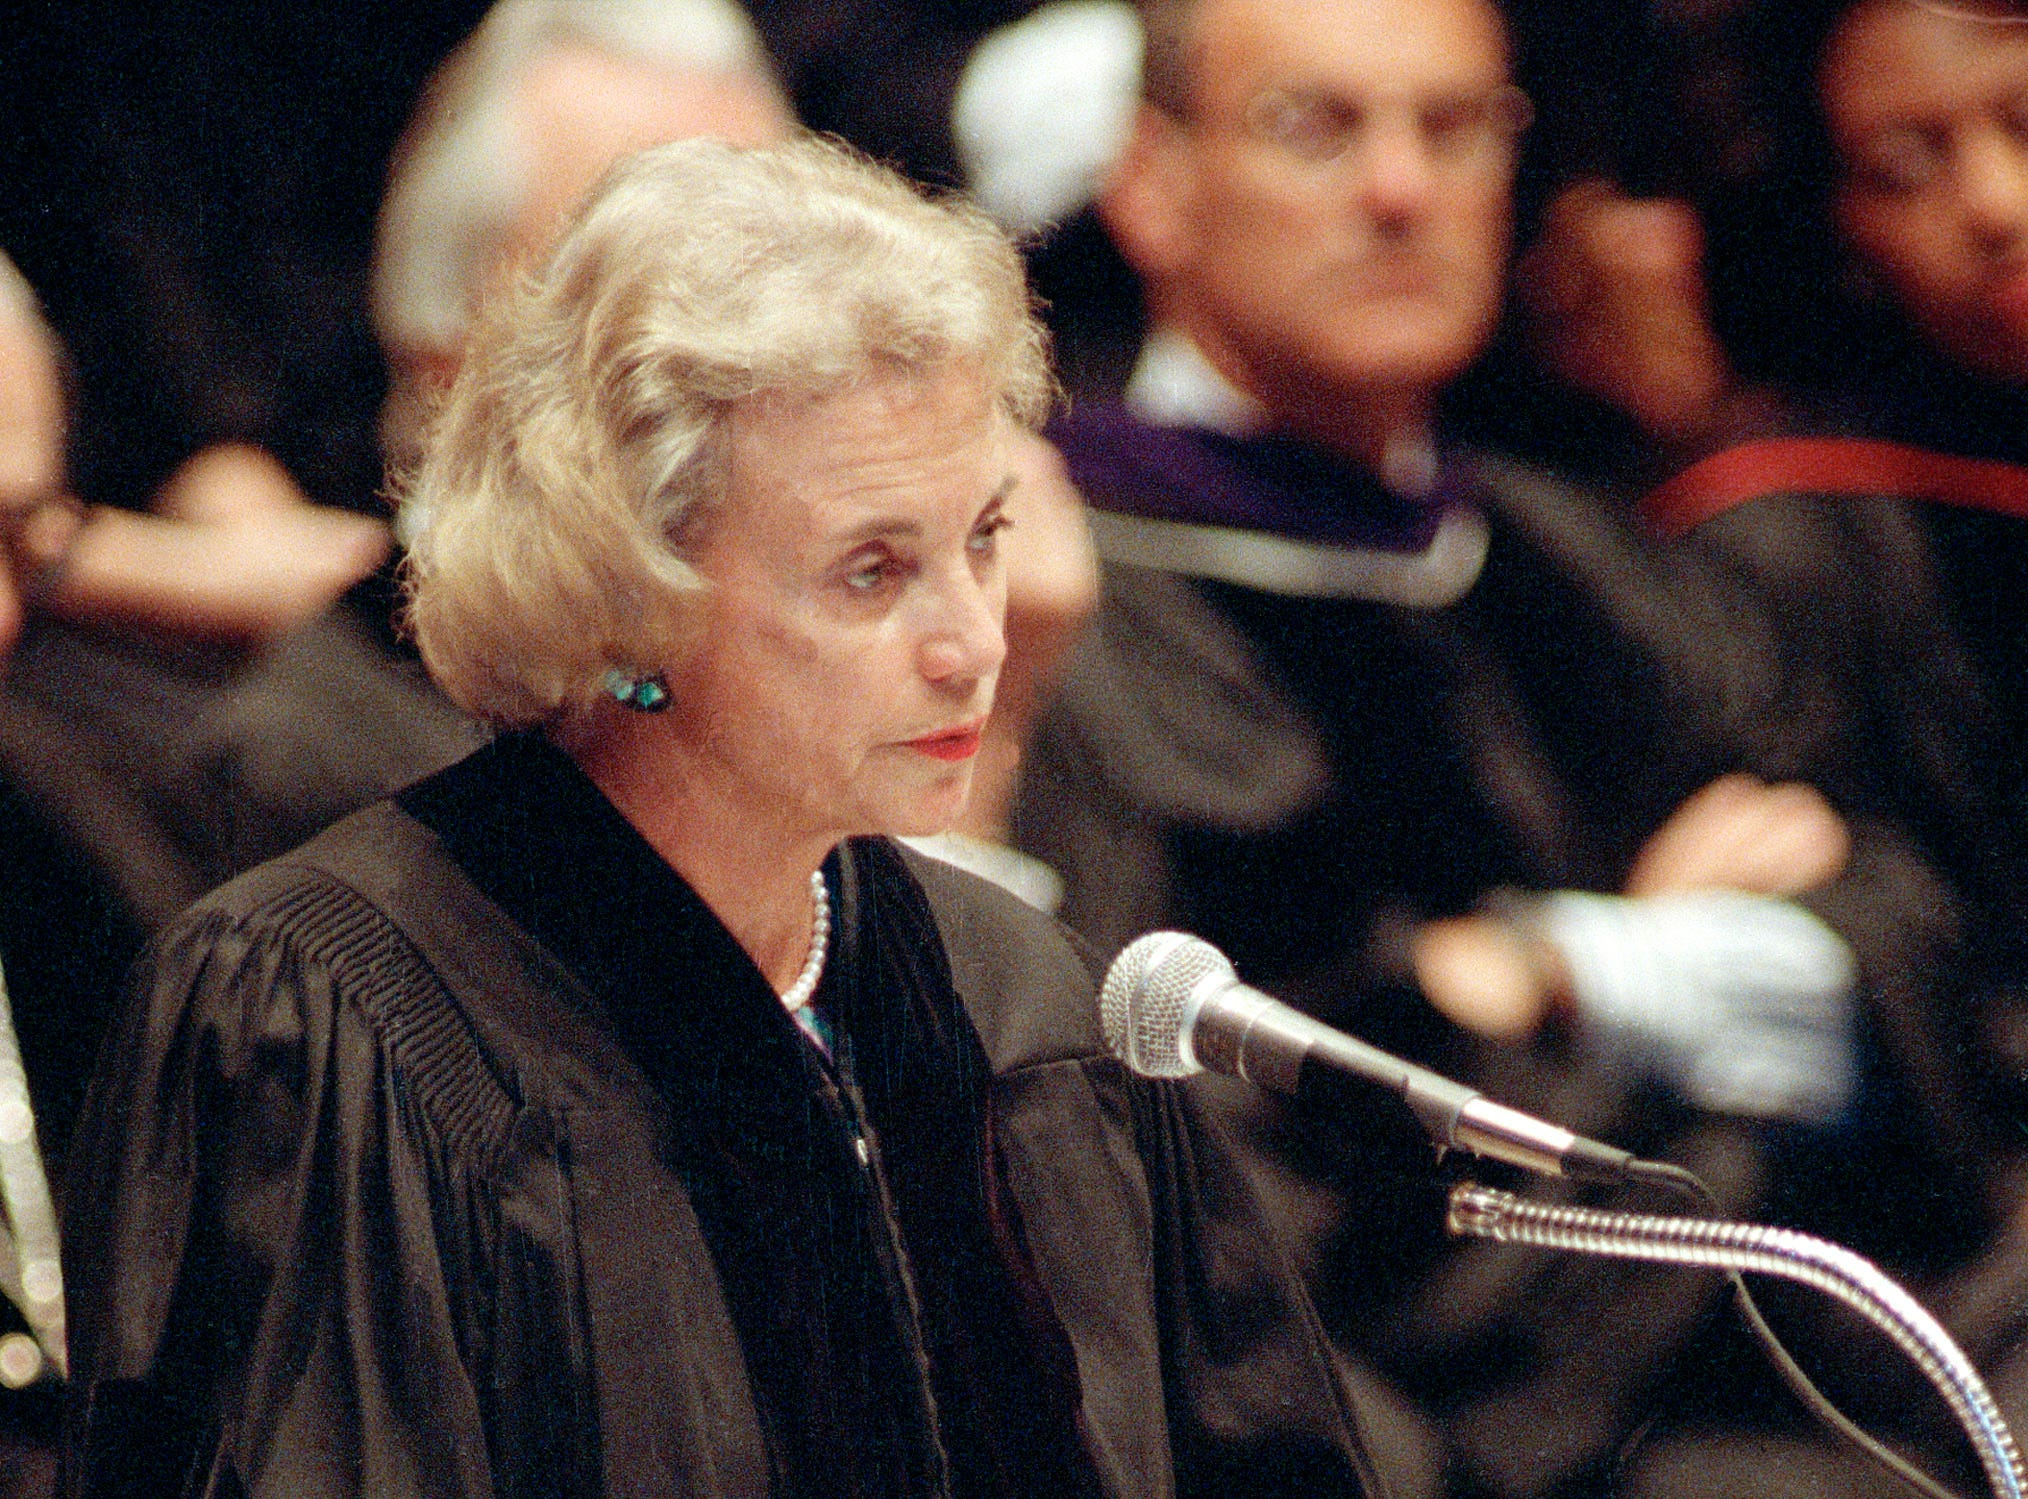 Supreme Court Justice Sandra Day O'Connor delivers the commencement address at New York Law School's 100th graduation ceremony in Manhattan, June 10, 1992.  Justice O'Connor also received an honorary Doctor of Laws degree during the ceremony.